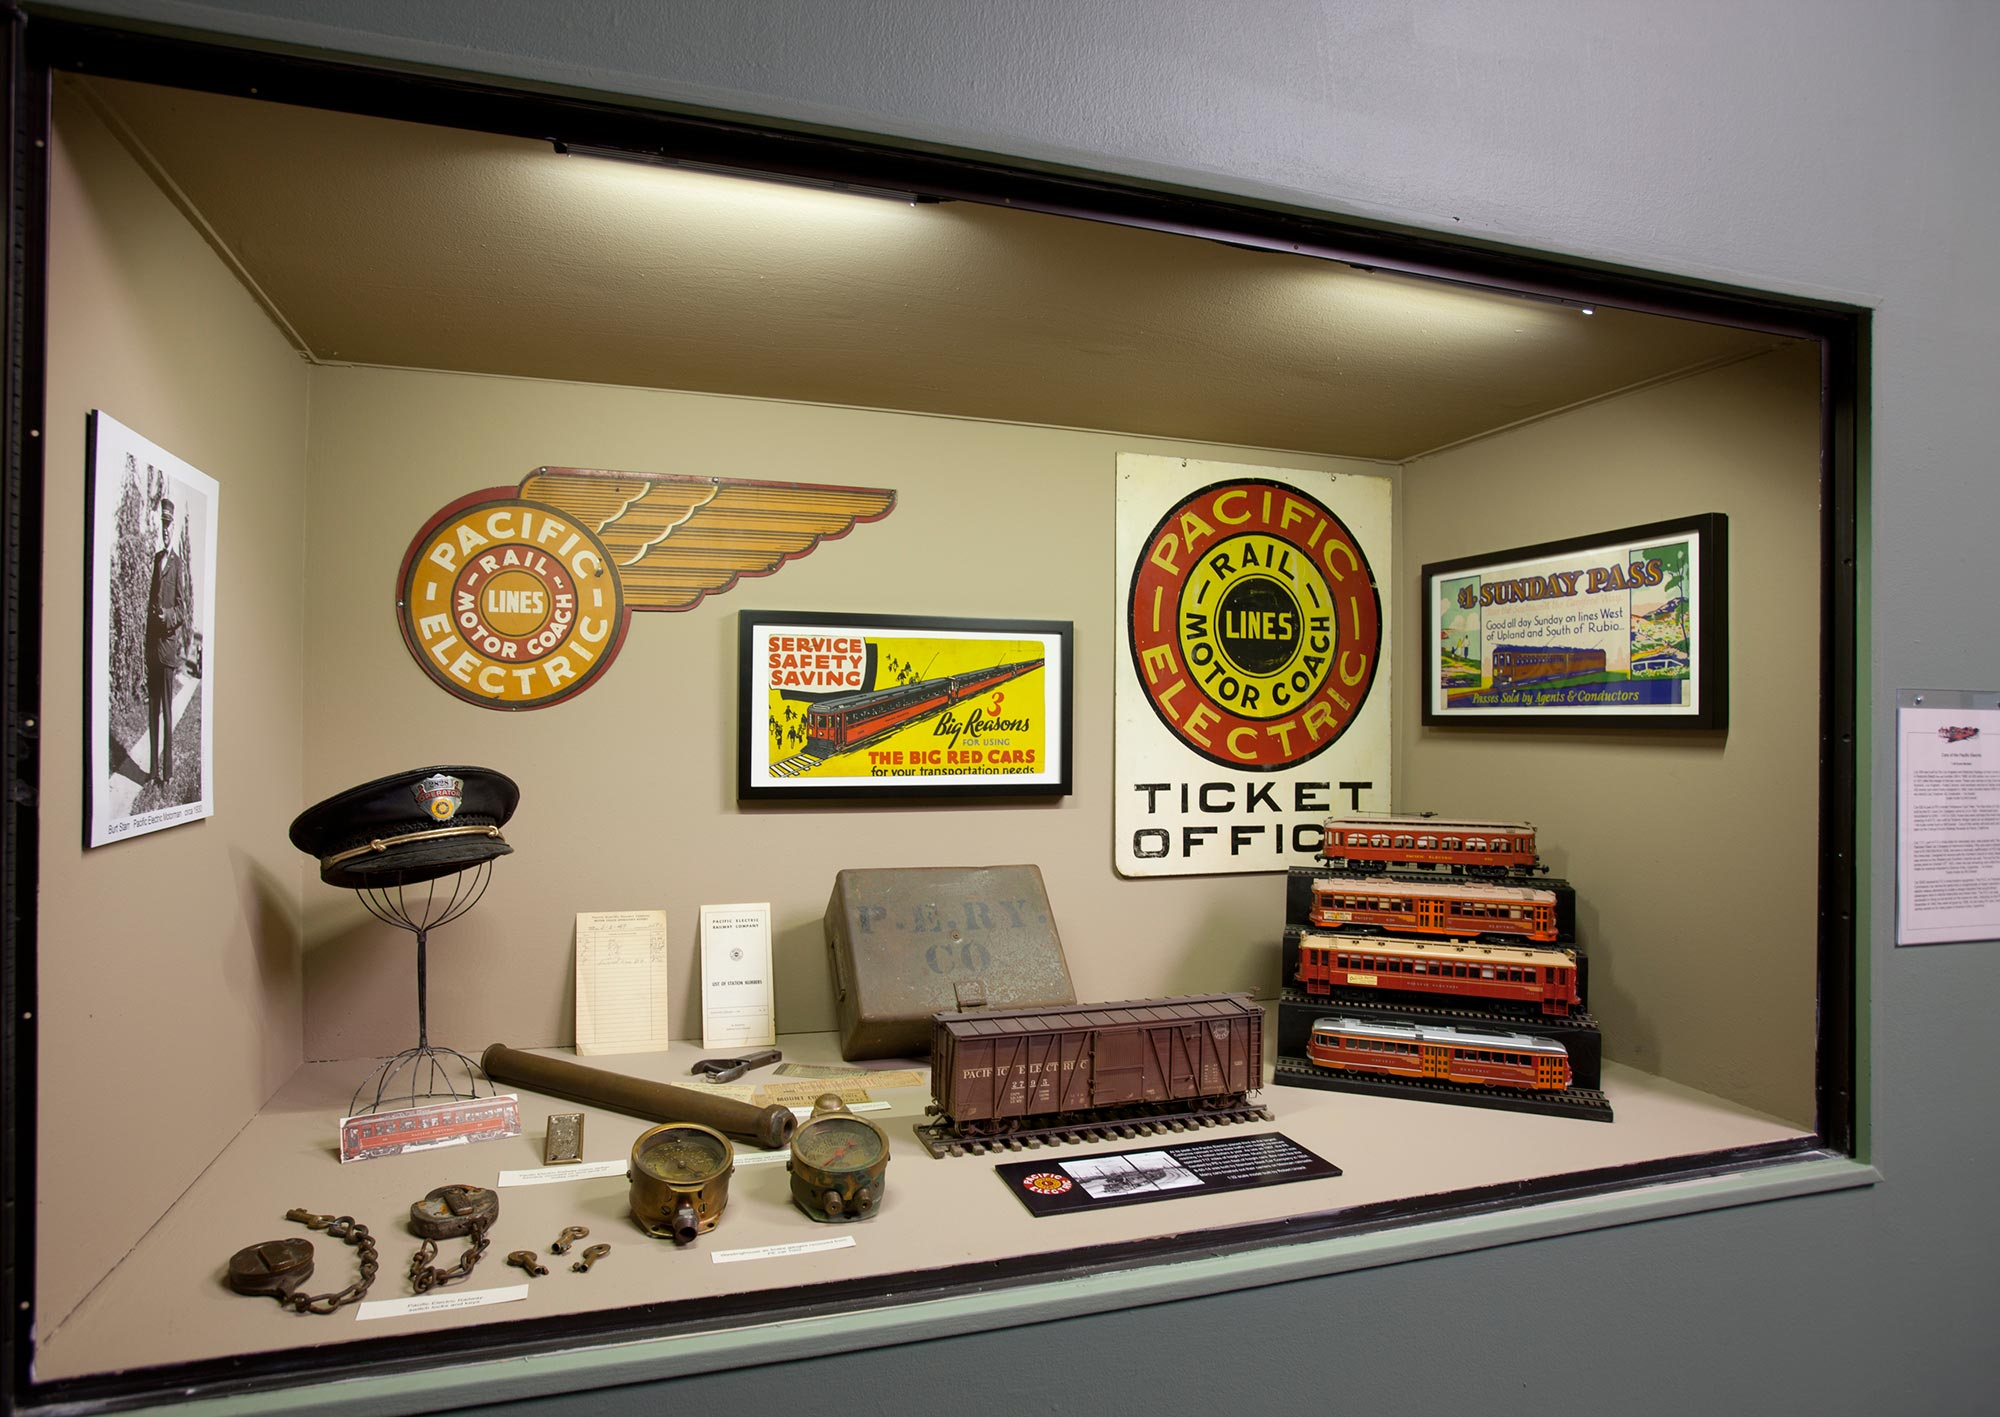 Pacific Electric: Then and Now at the Pasadena Museum of History Through January 13, 2013